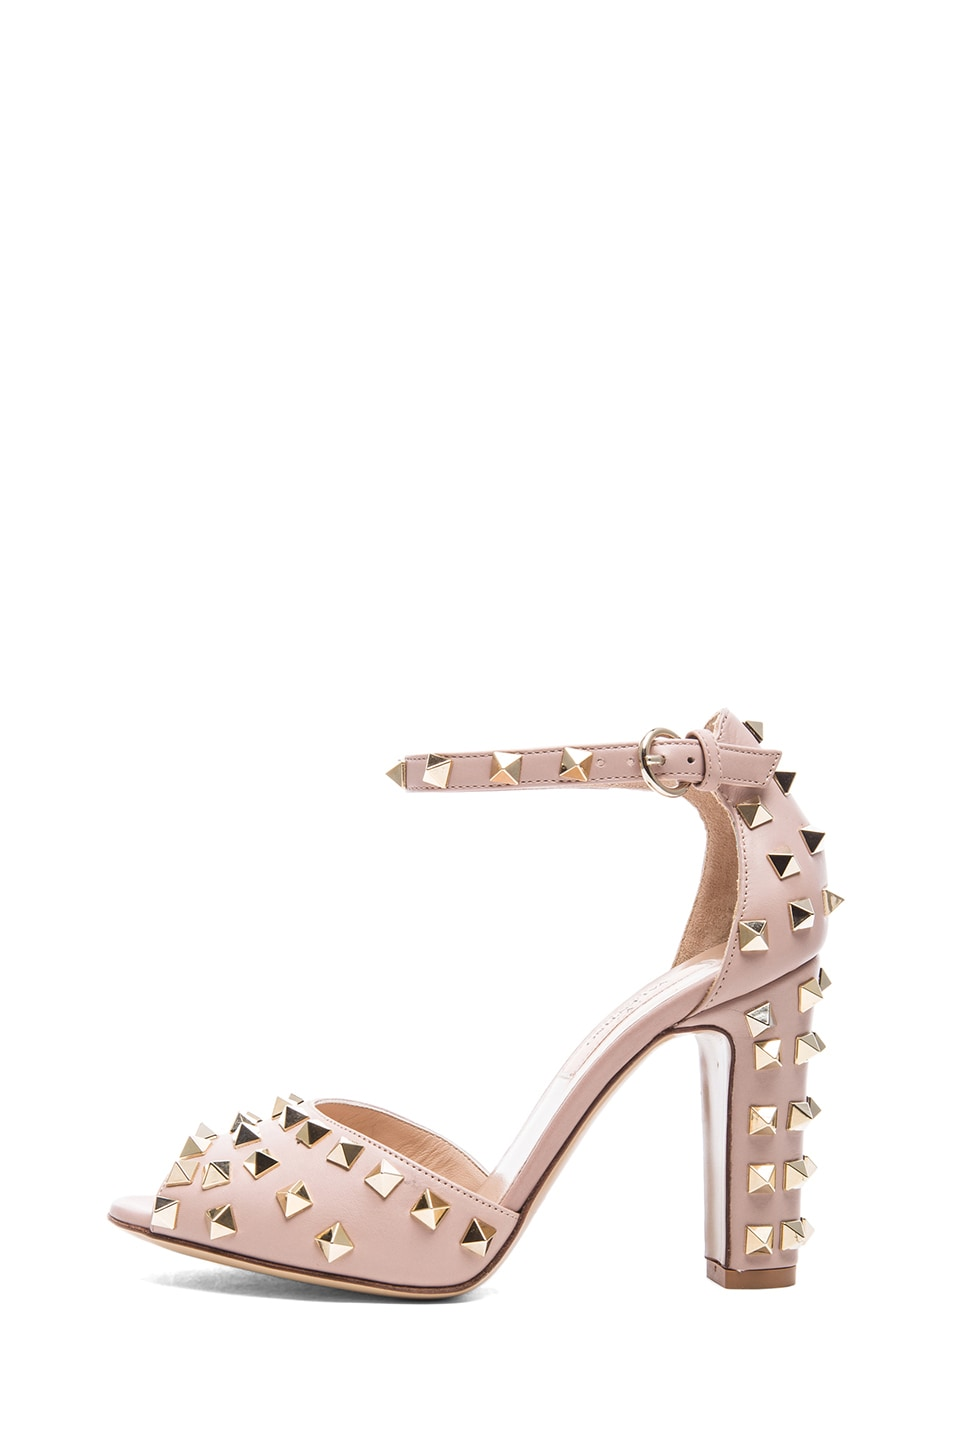 Image 1 of Valentino Rockstud Leather Sandals T.95 in Poudre